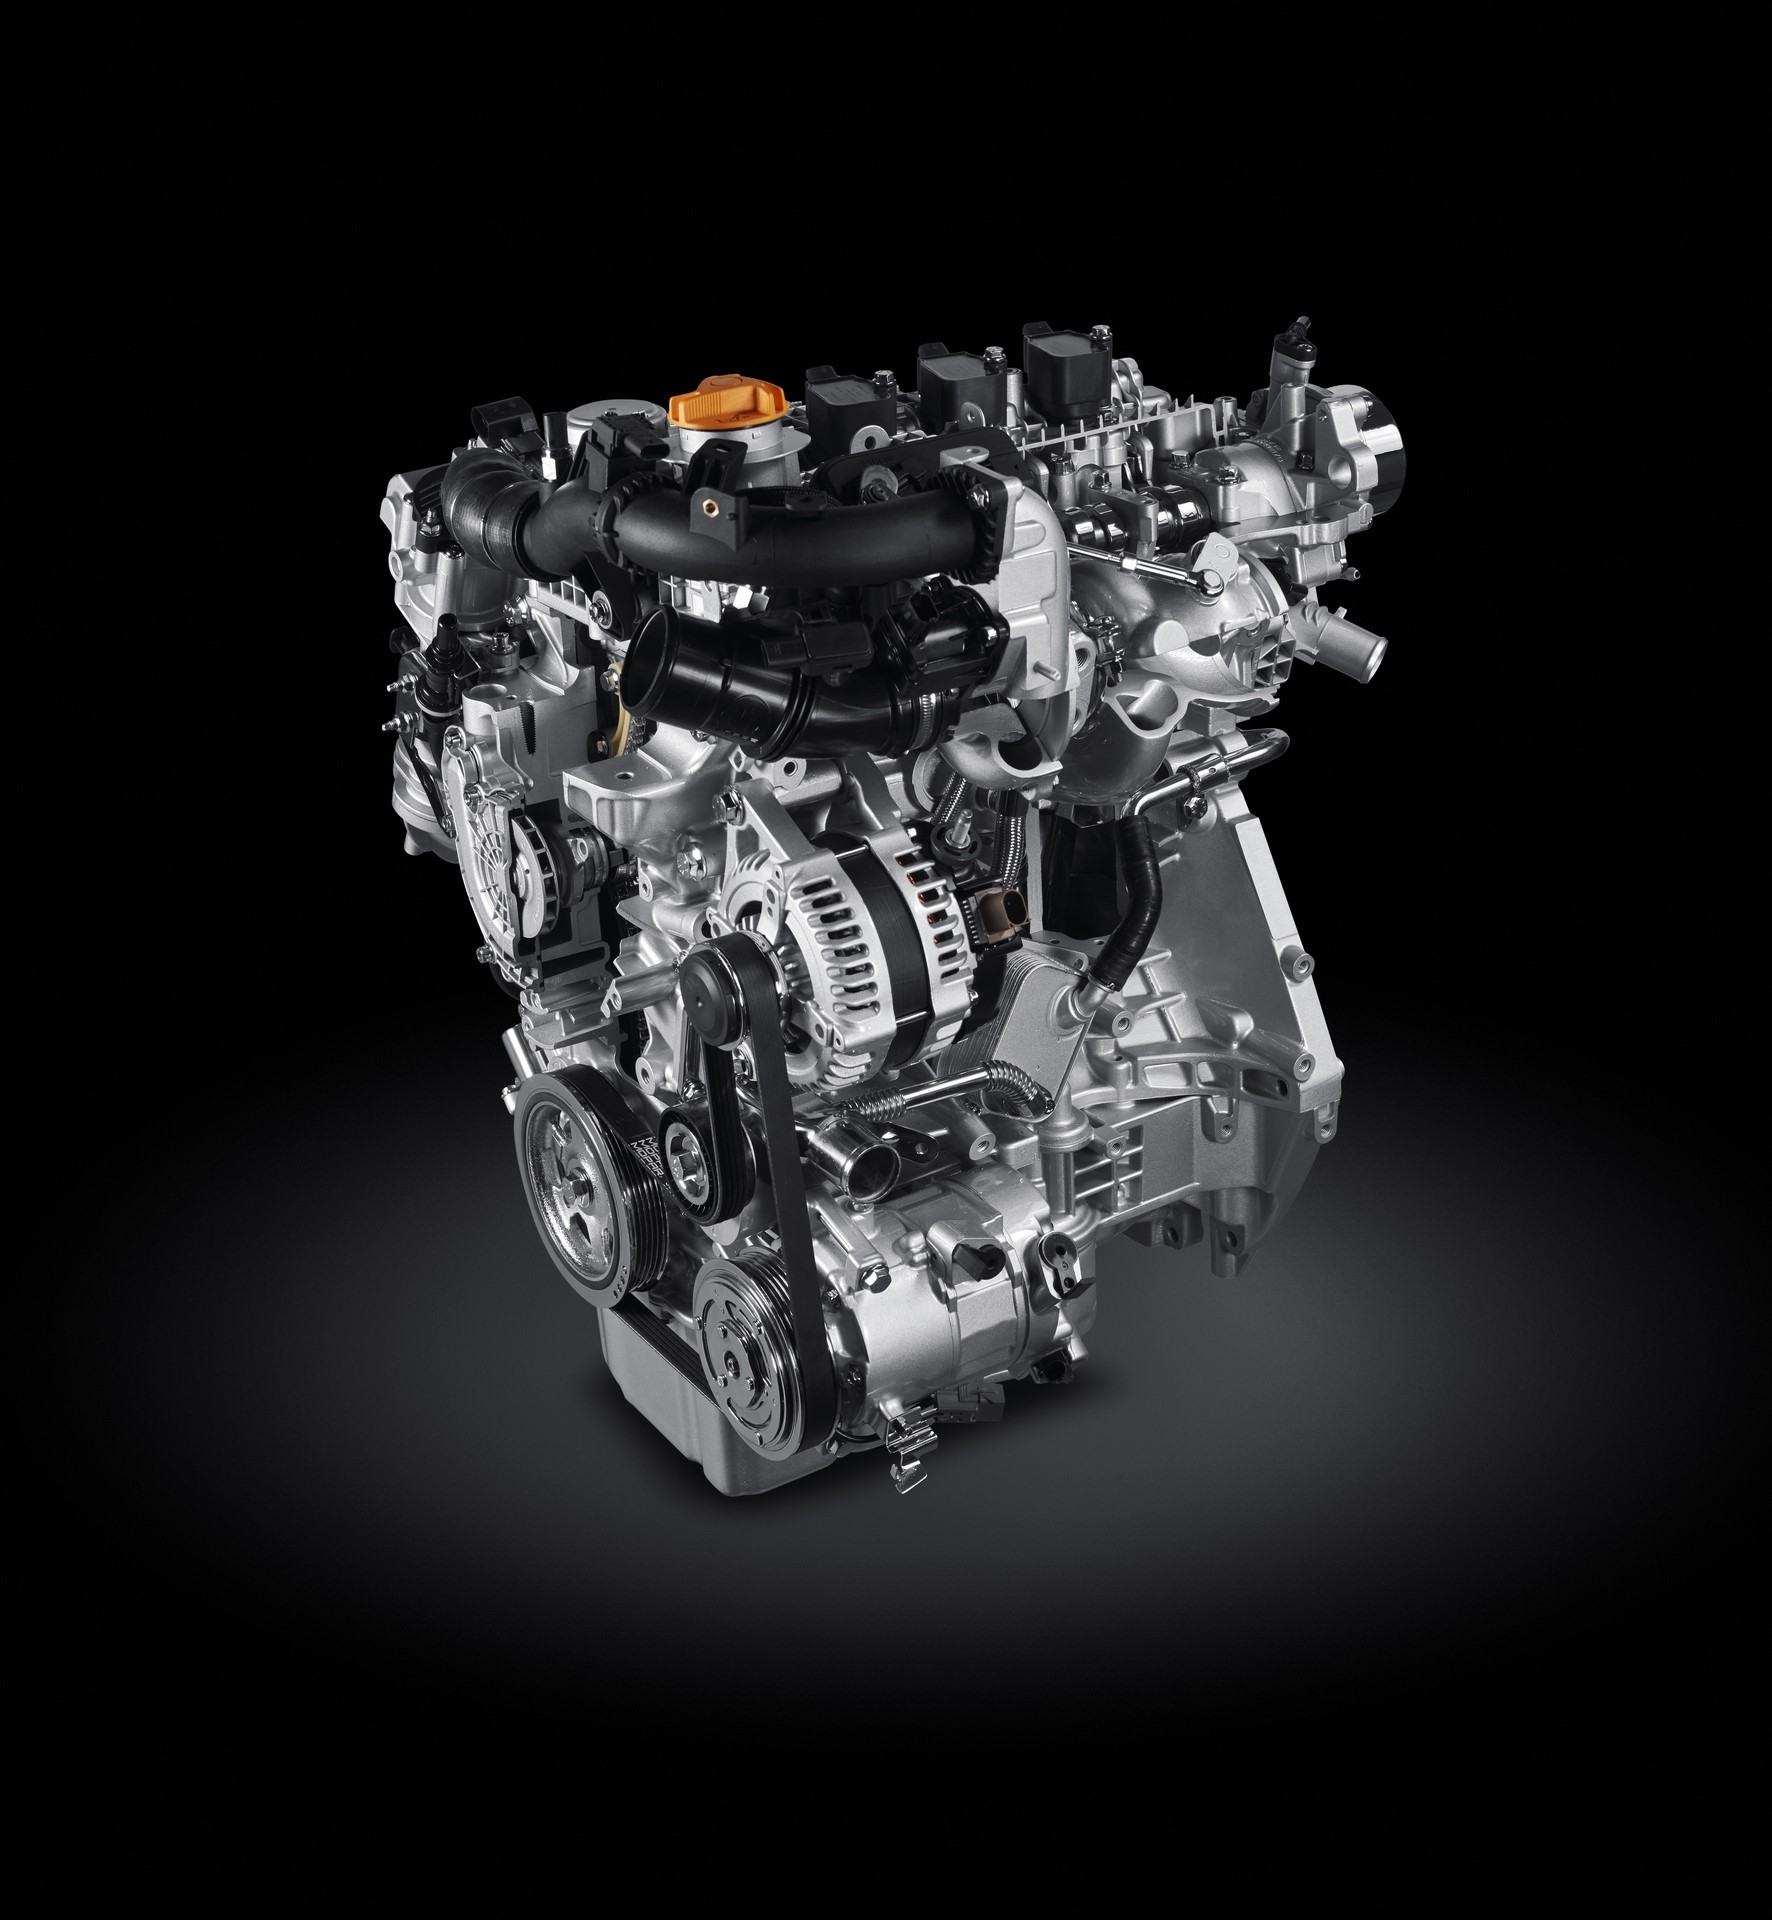 New-13L-Turbo-4-cylinder-150HP_10